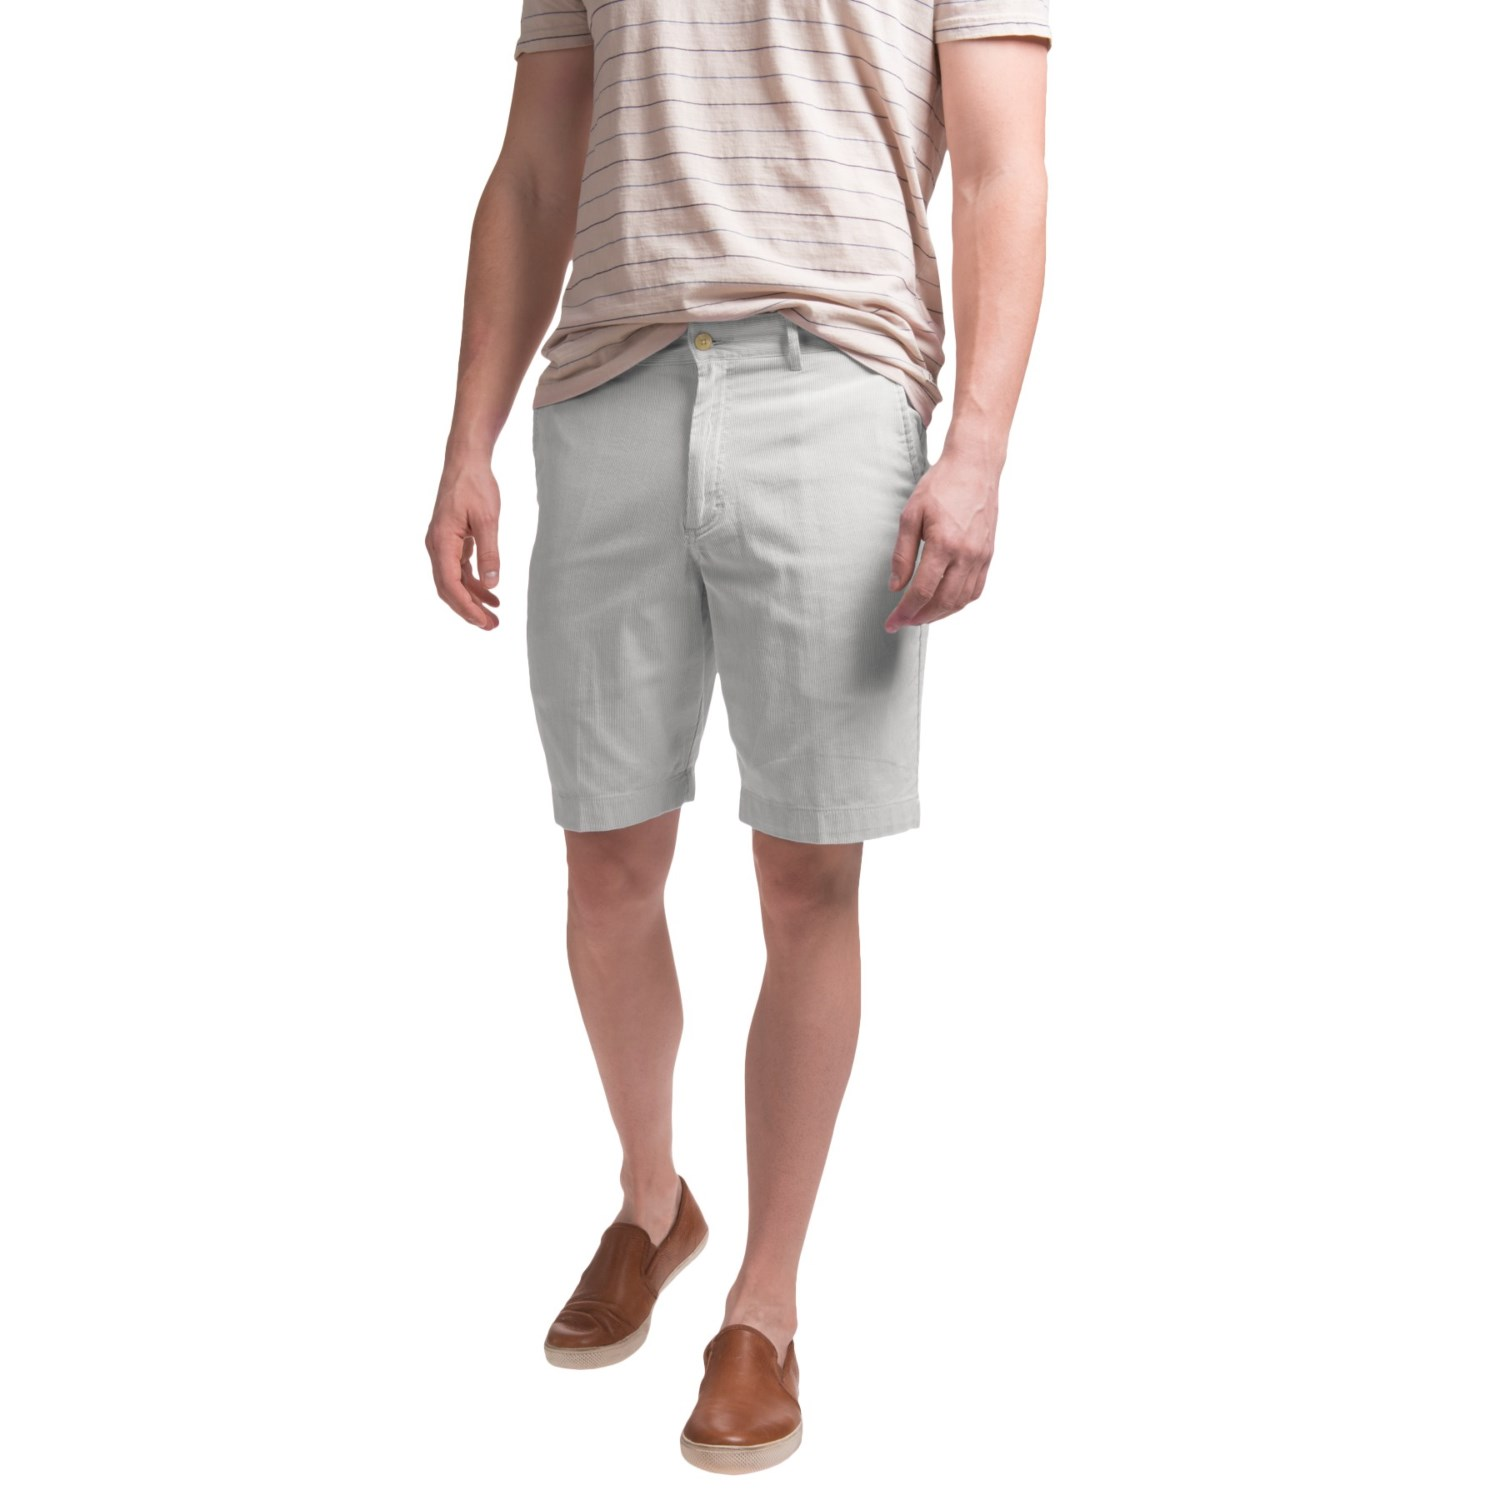 Bills Khakis Seersucker Parker Shorts (For Men) 191RT